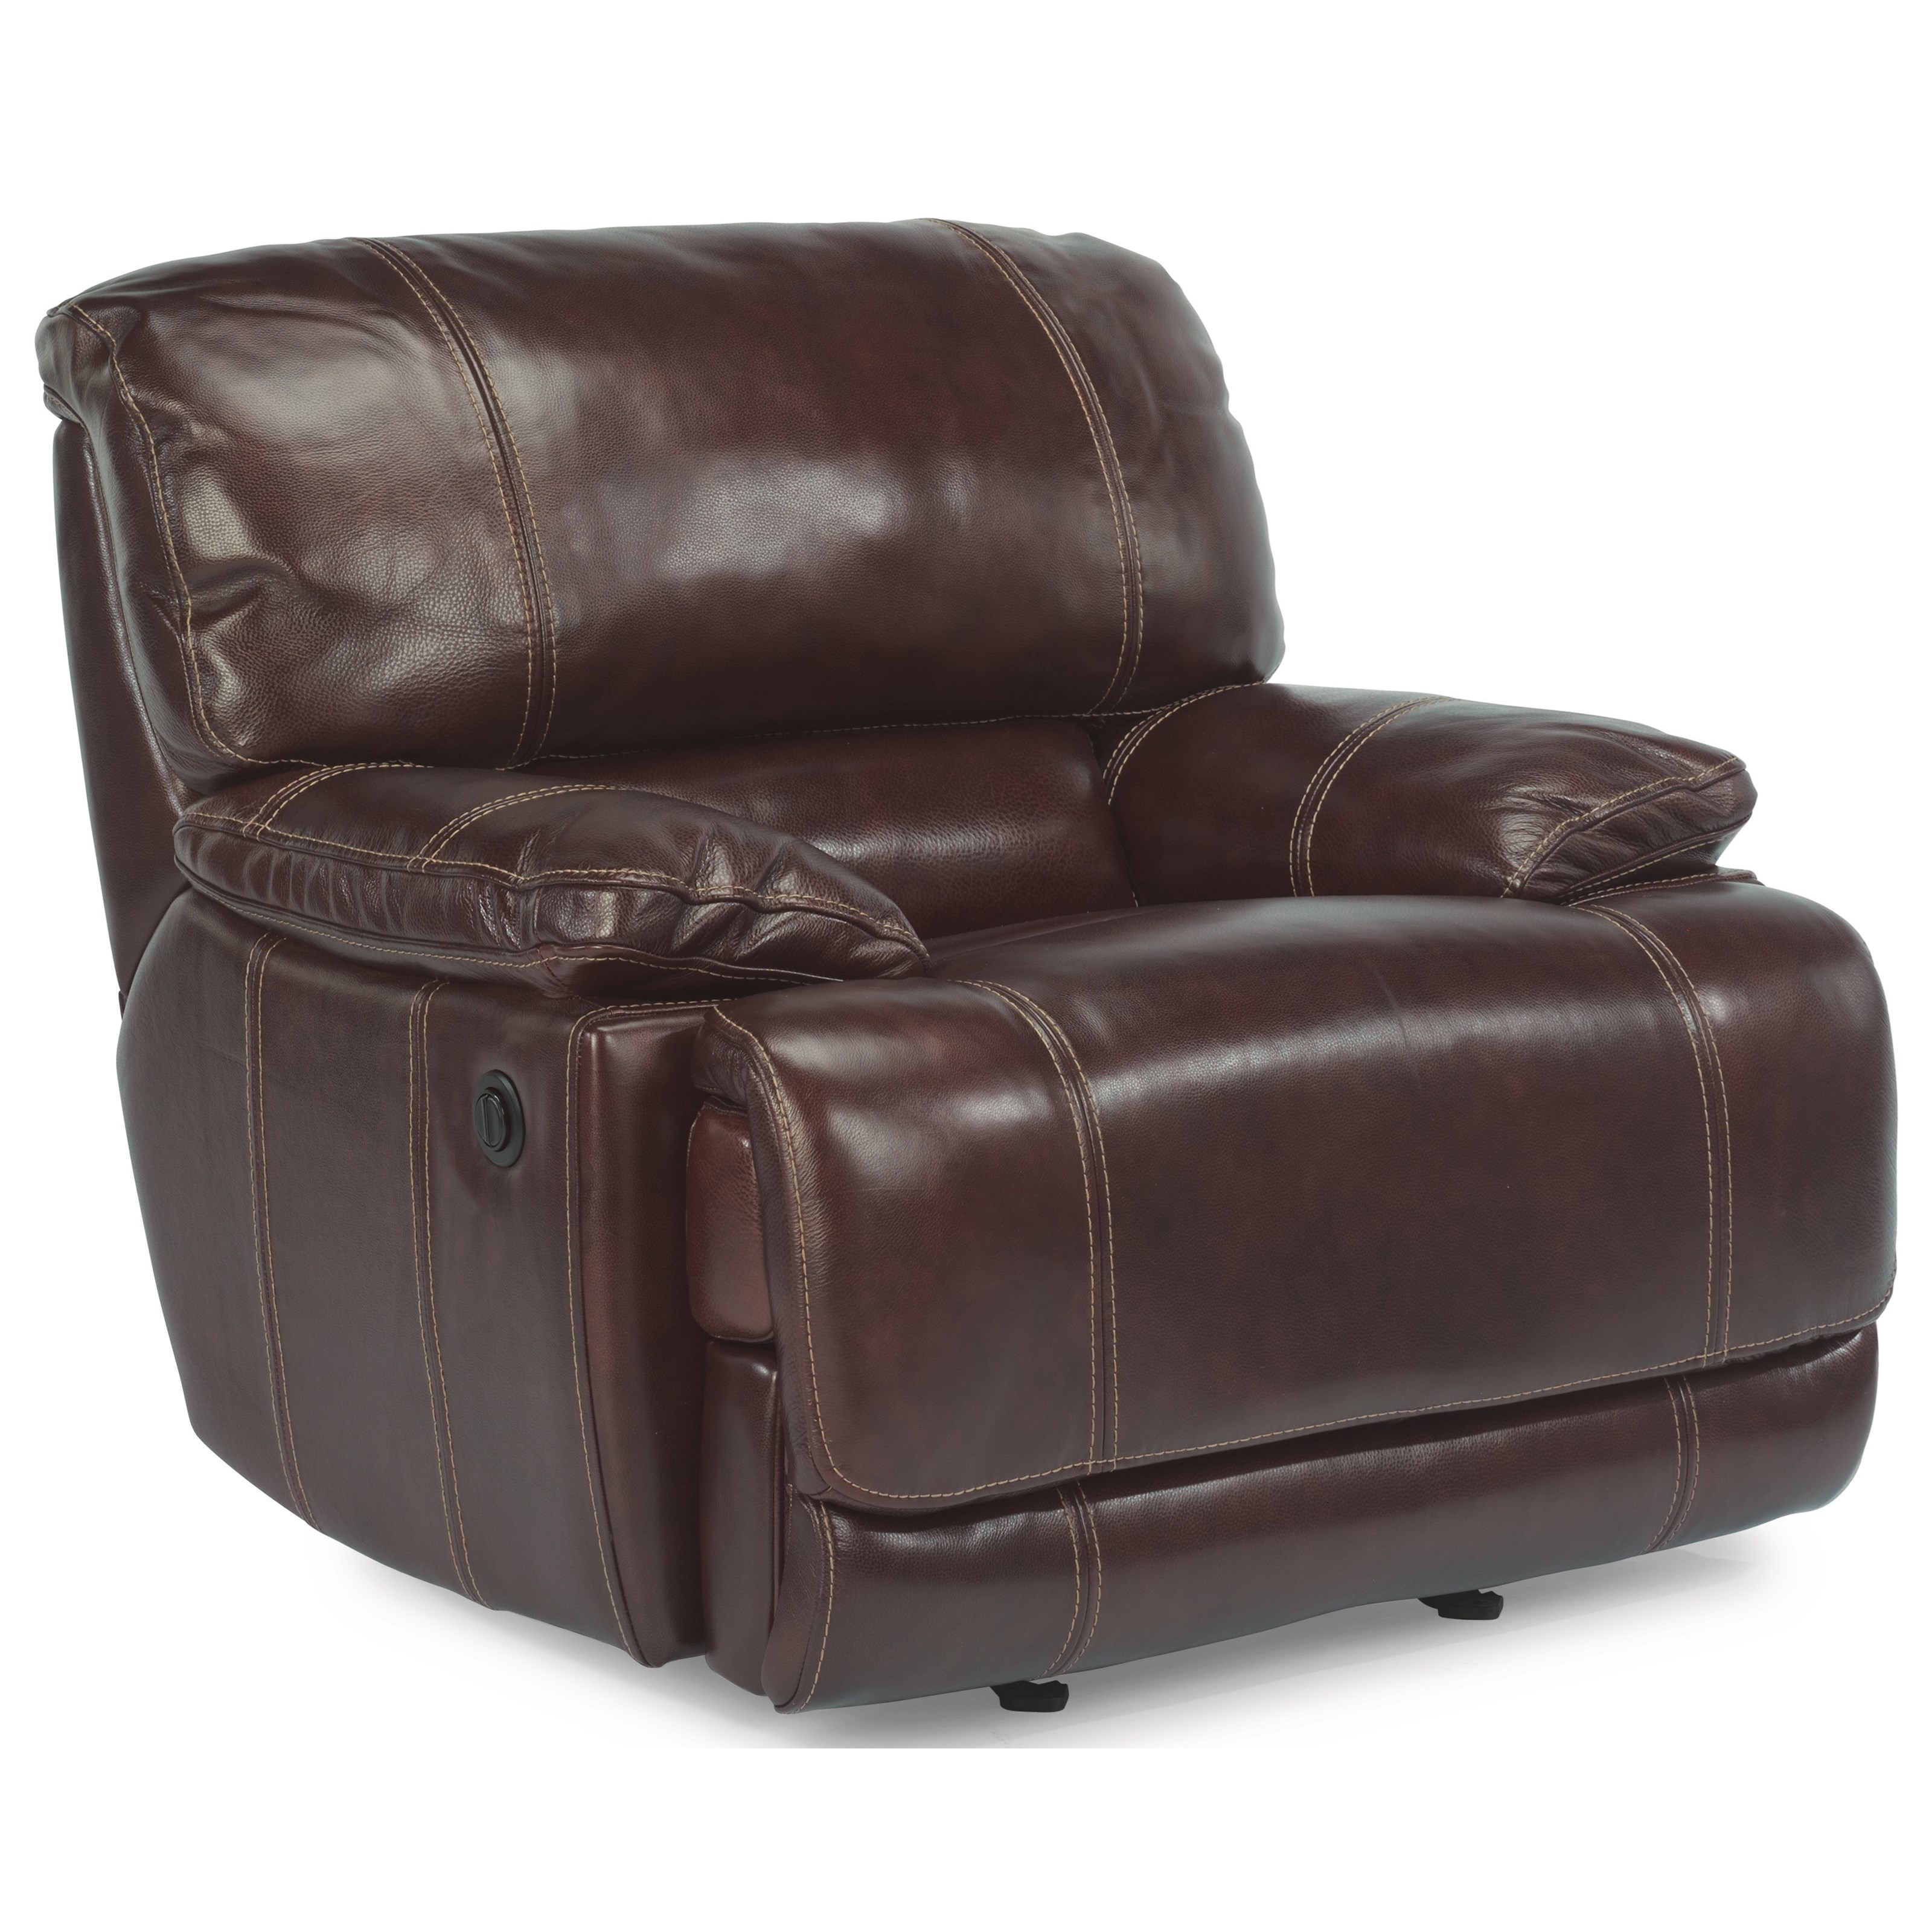 chair 62 helensburgh flexsteel tremont 1250 54 glider recliner with pillow arms